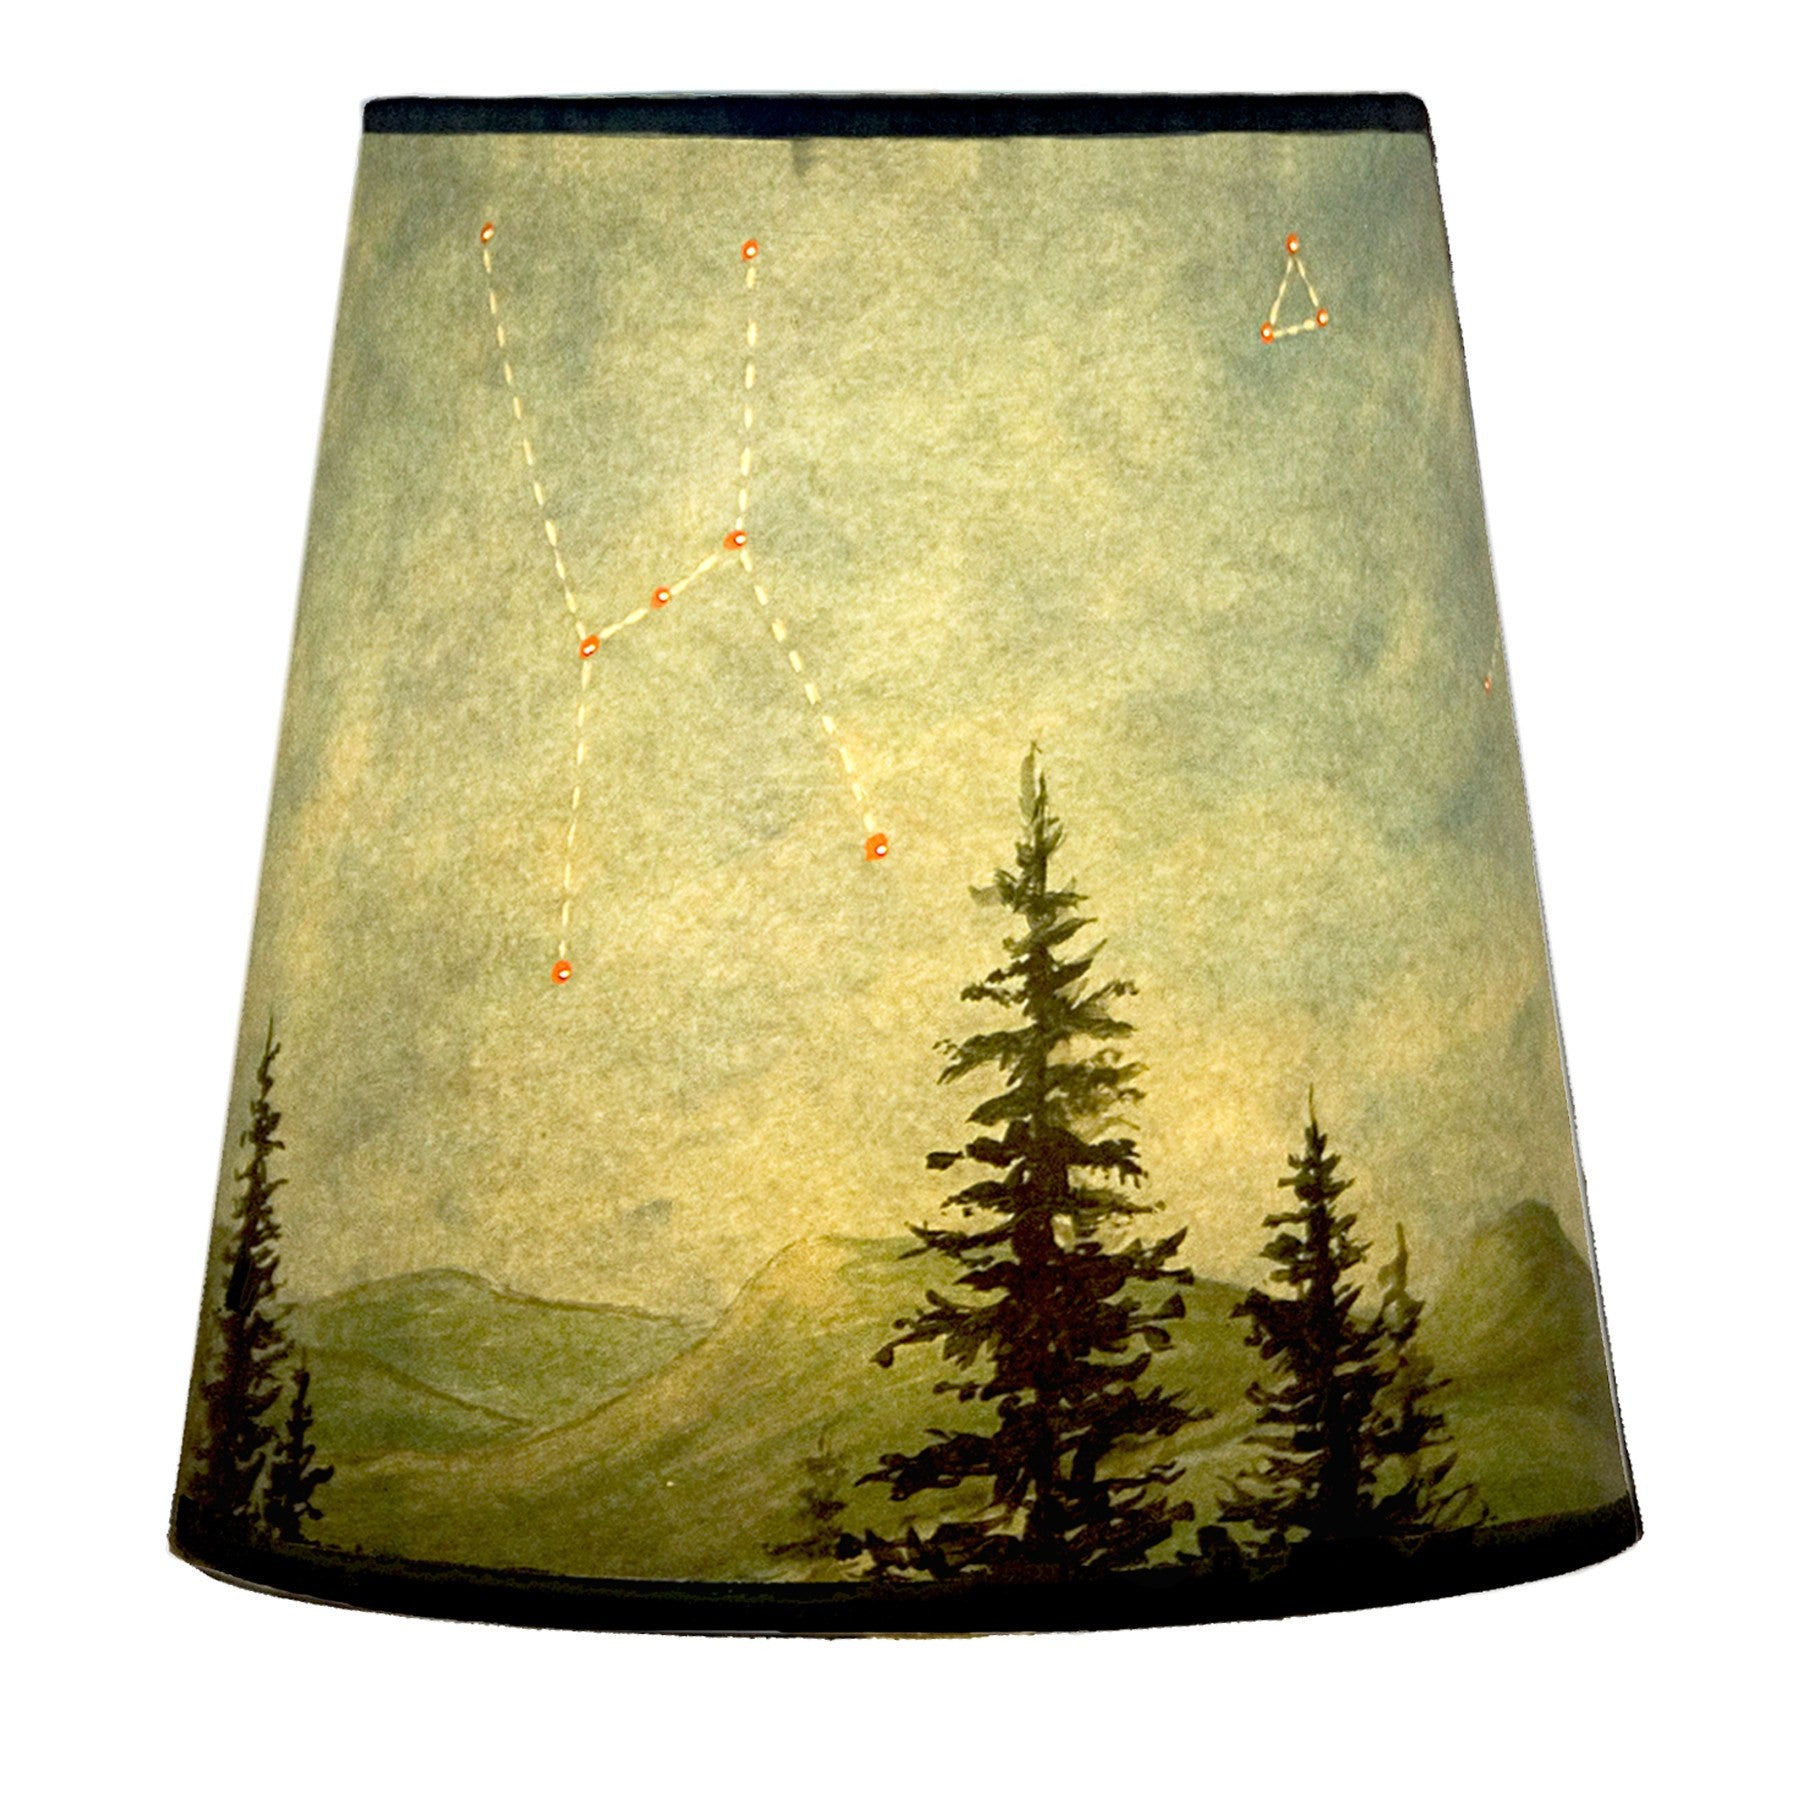 Large conical lamp shade in pool ugone thomas small drum lamp shade in midnight sky mozeypictures Images